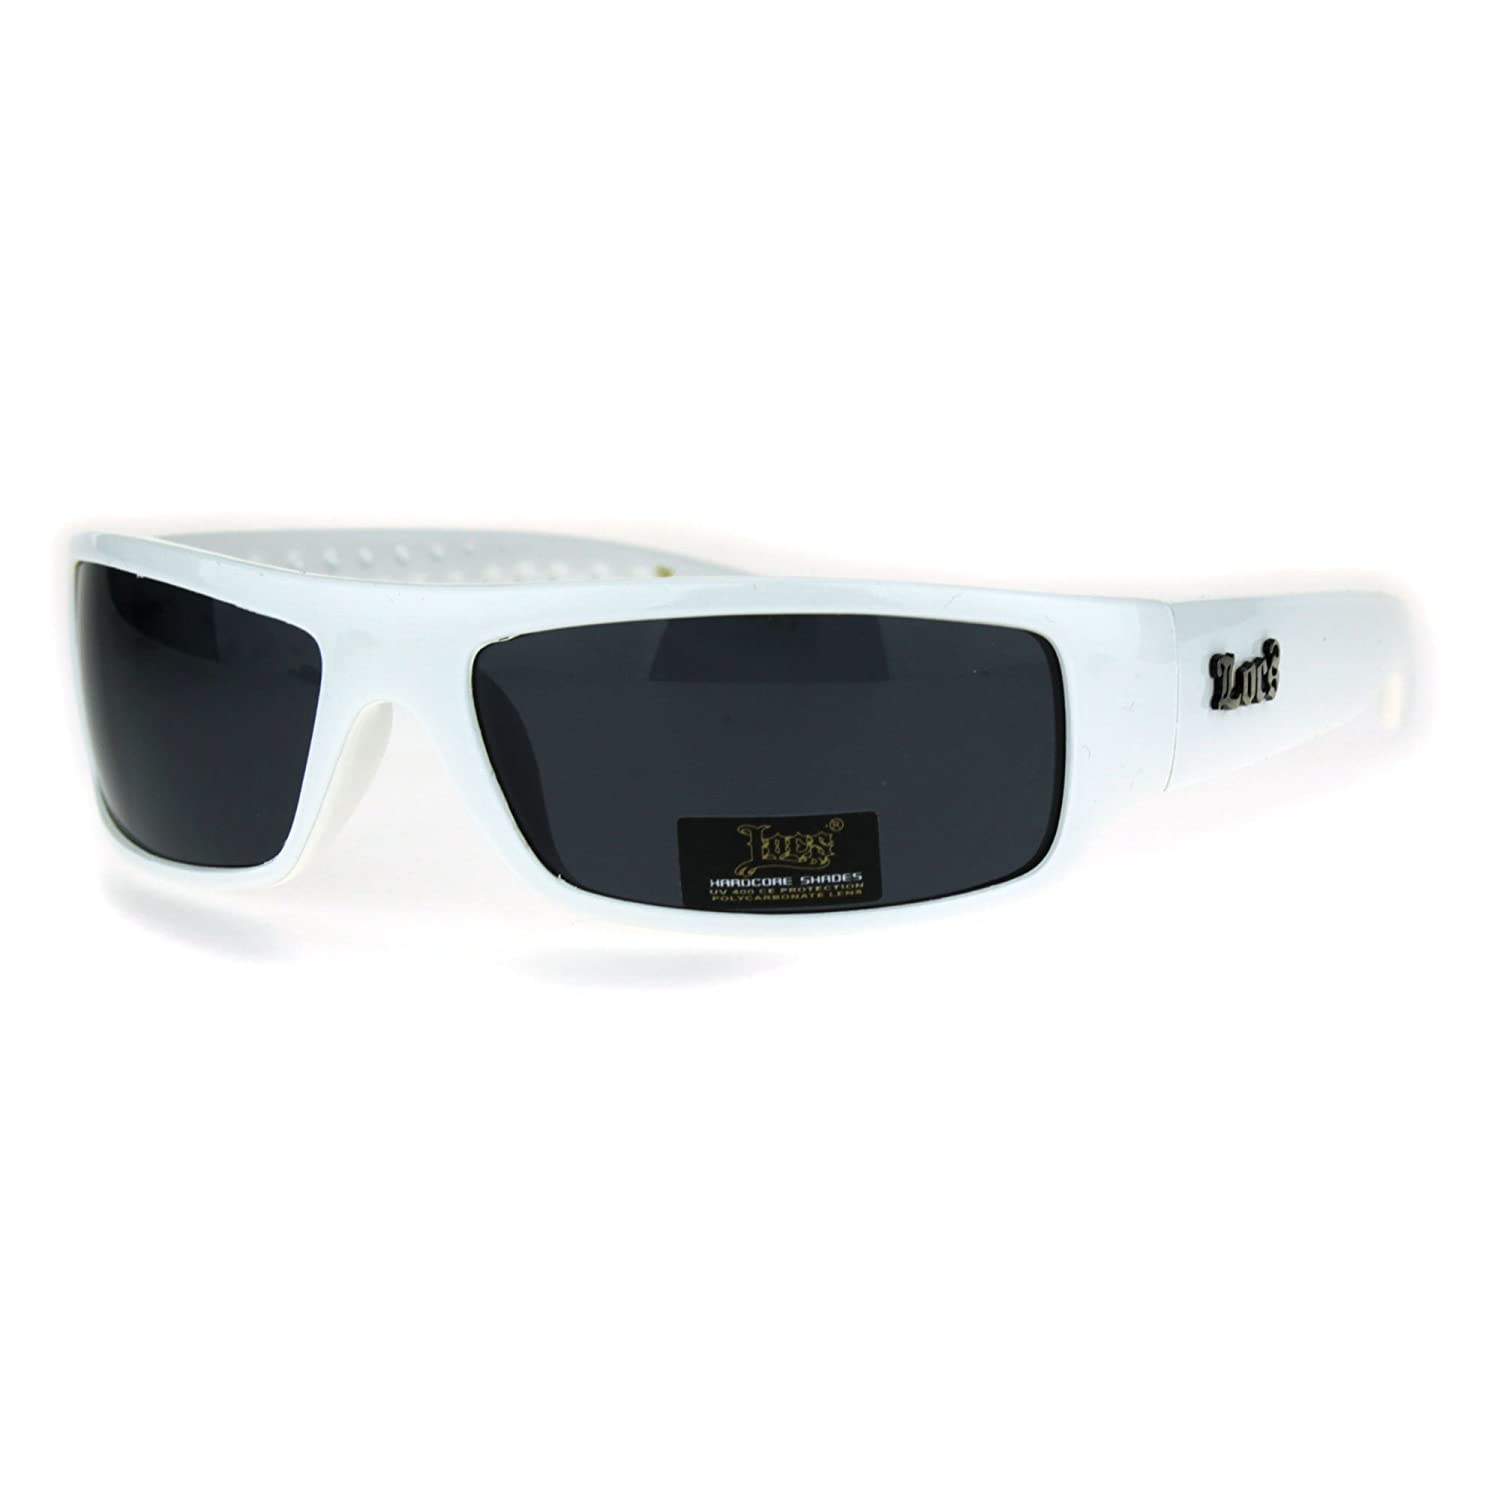 Locs Mad Dog Hardcore Gangster Cholo Narrow Rectangular Sunglasses lc9003-bk